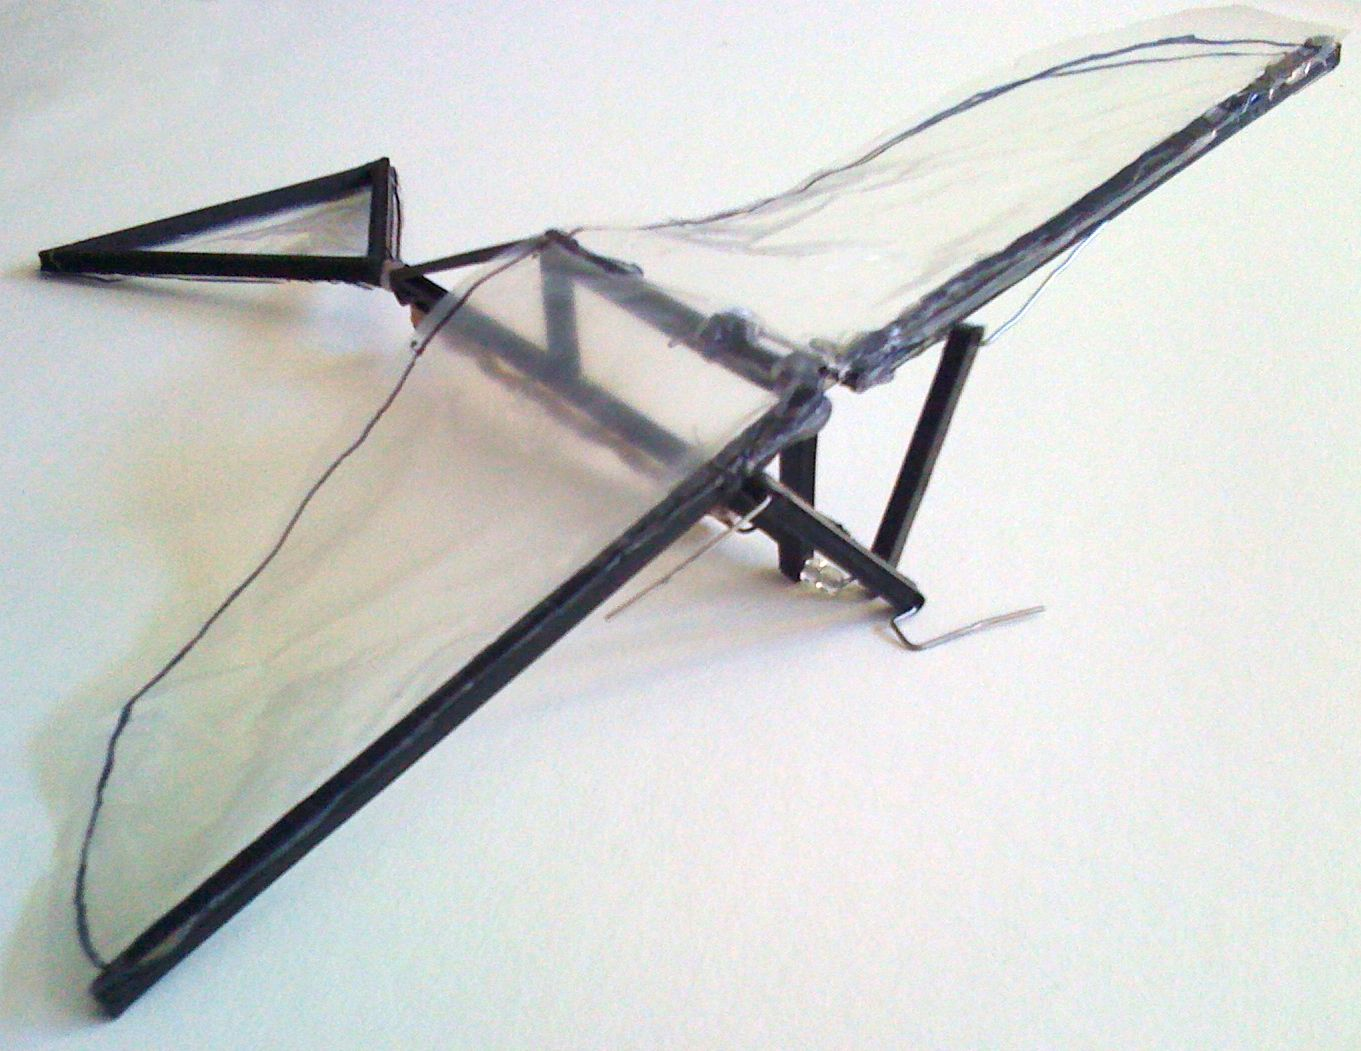 Partially 3d Printed Ornithopter Testhttp://www.youtube.com/watch?v=Tw-b4Z79fuo